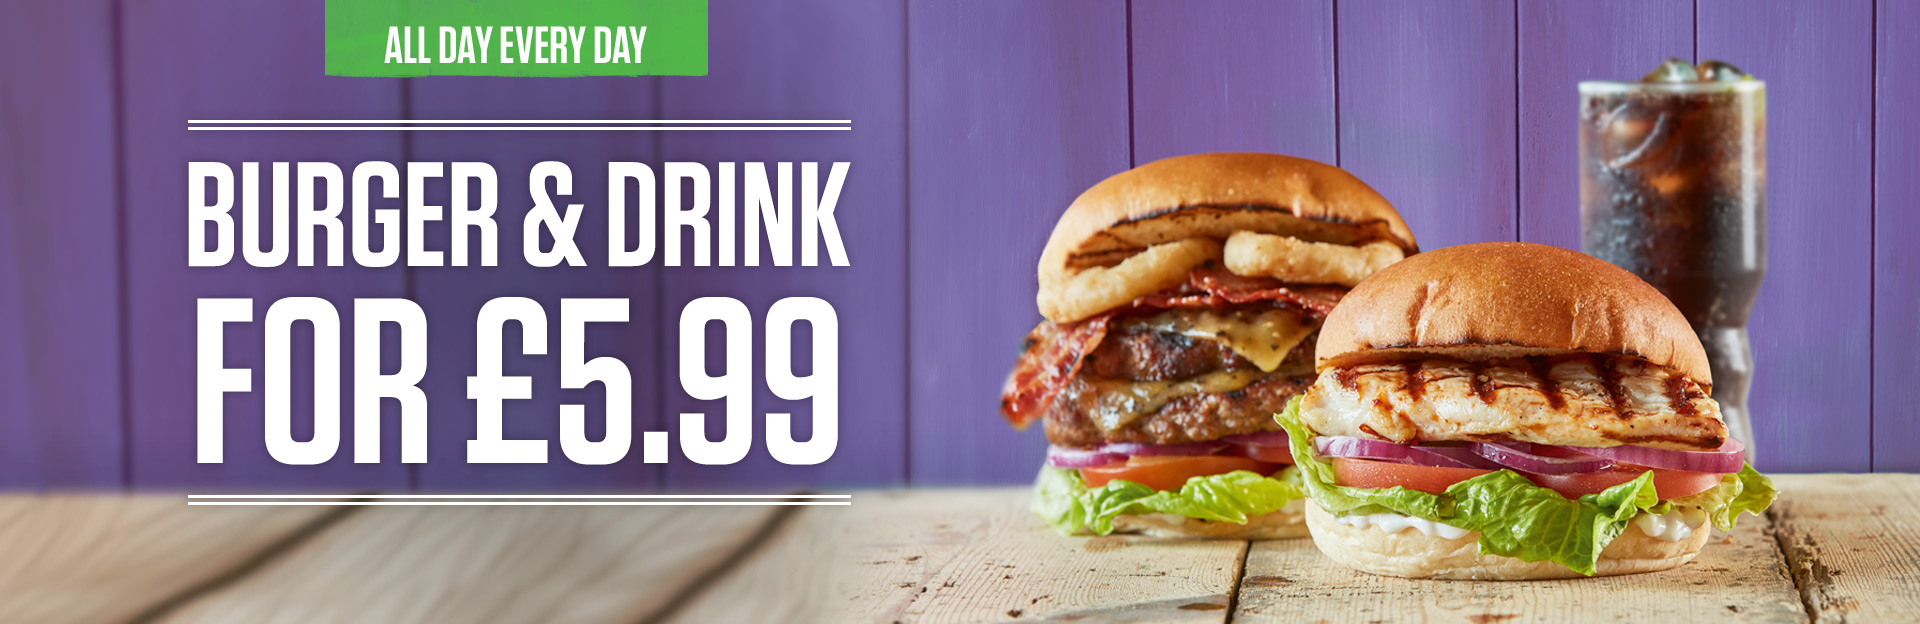 Burger and Drink Deal at The Armytage Arms